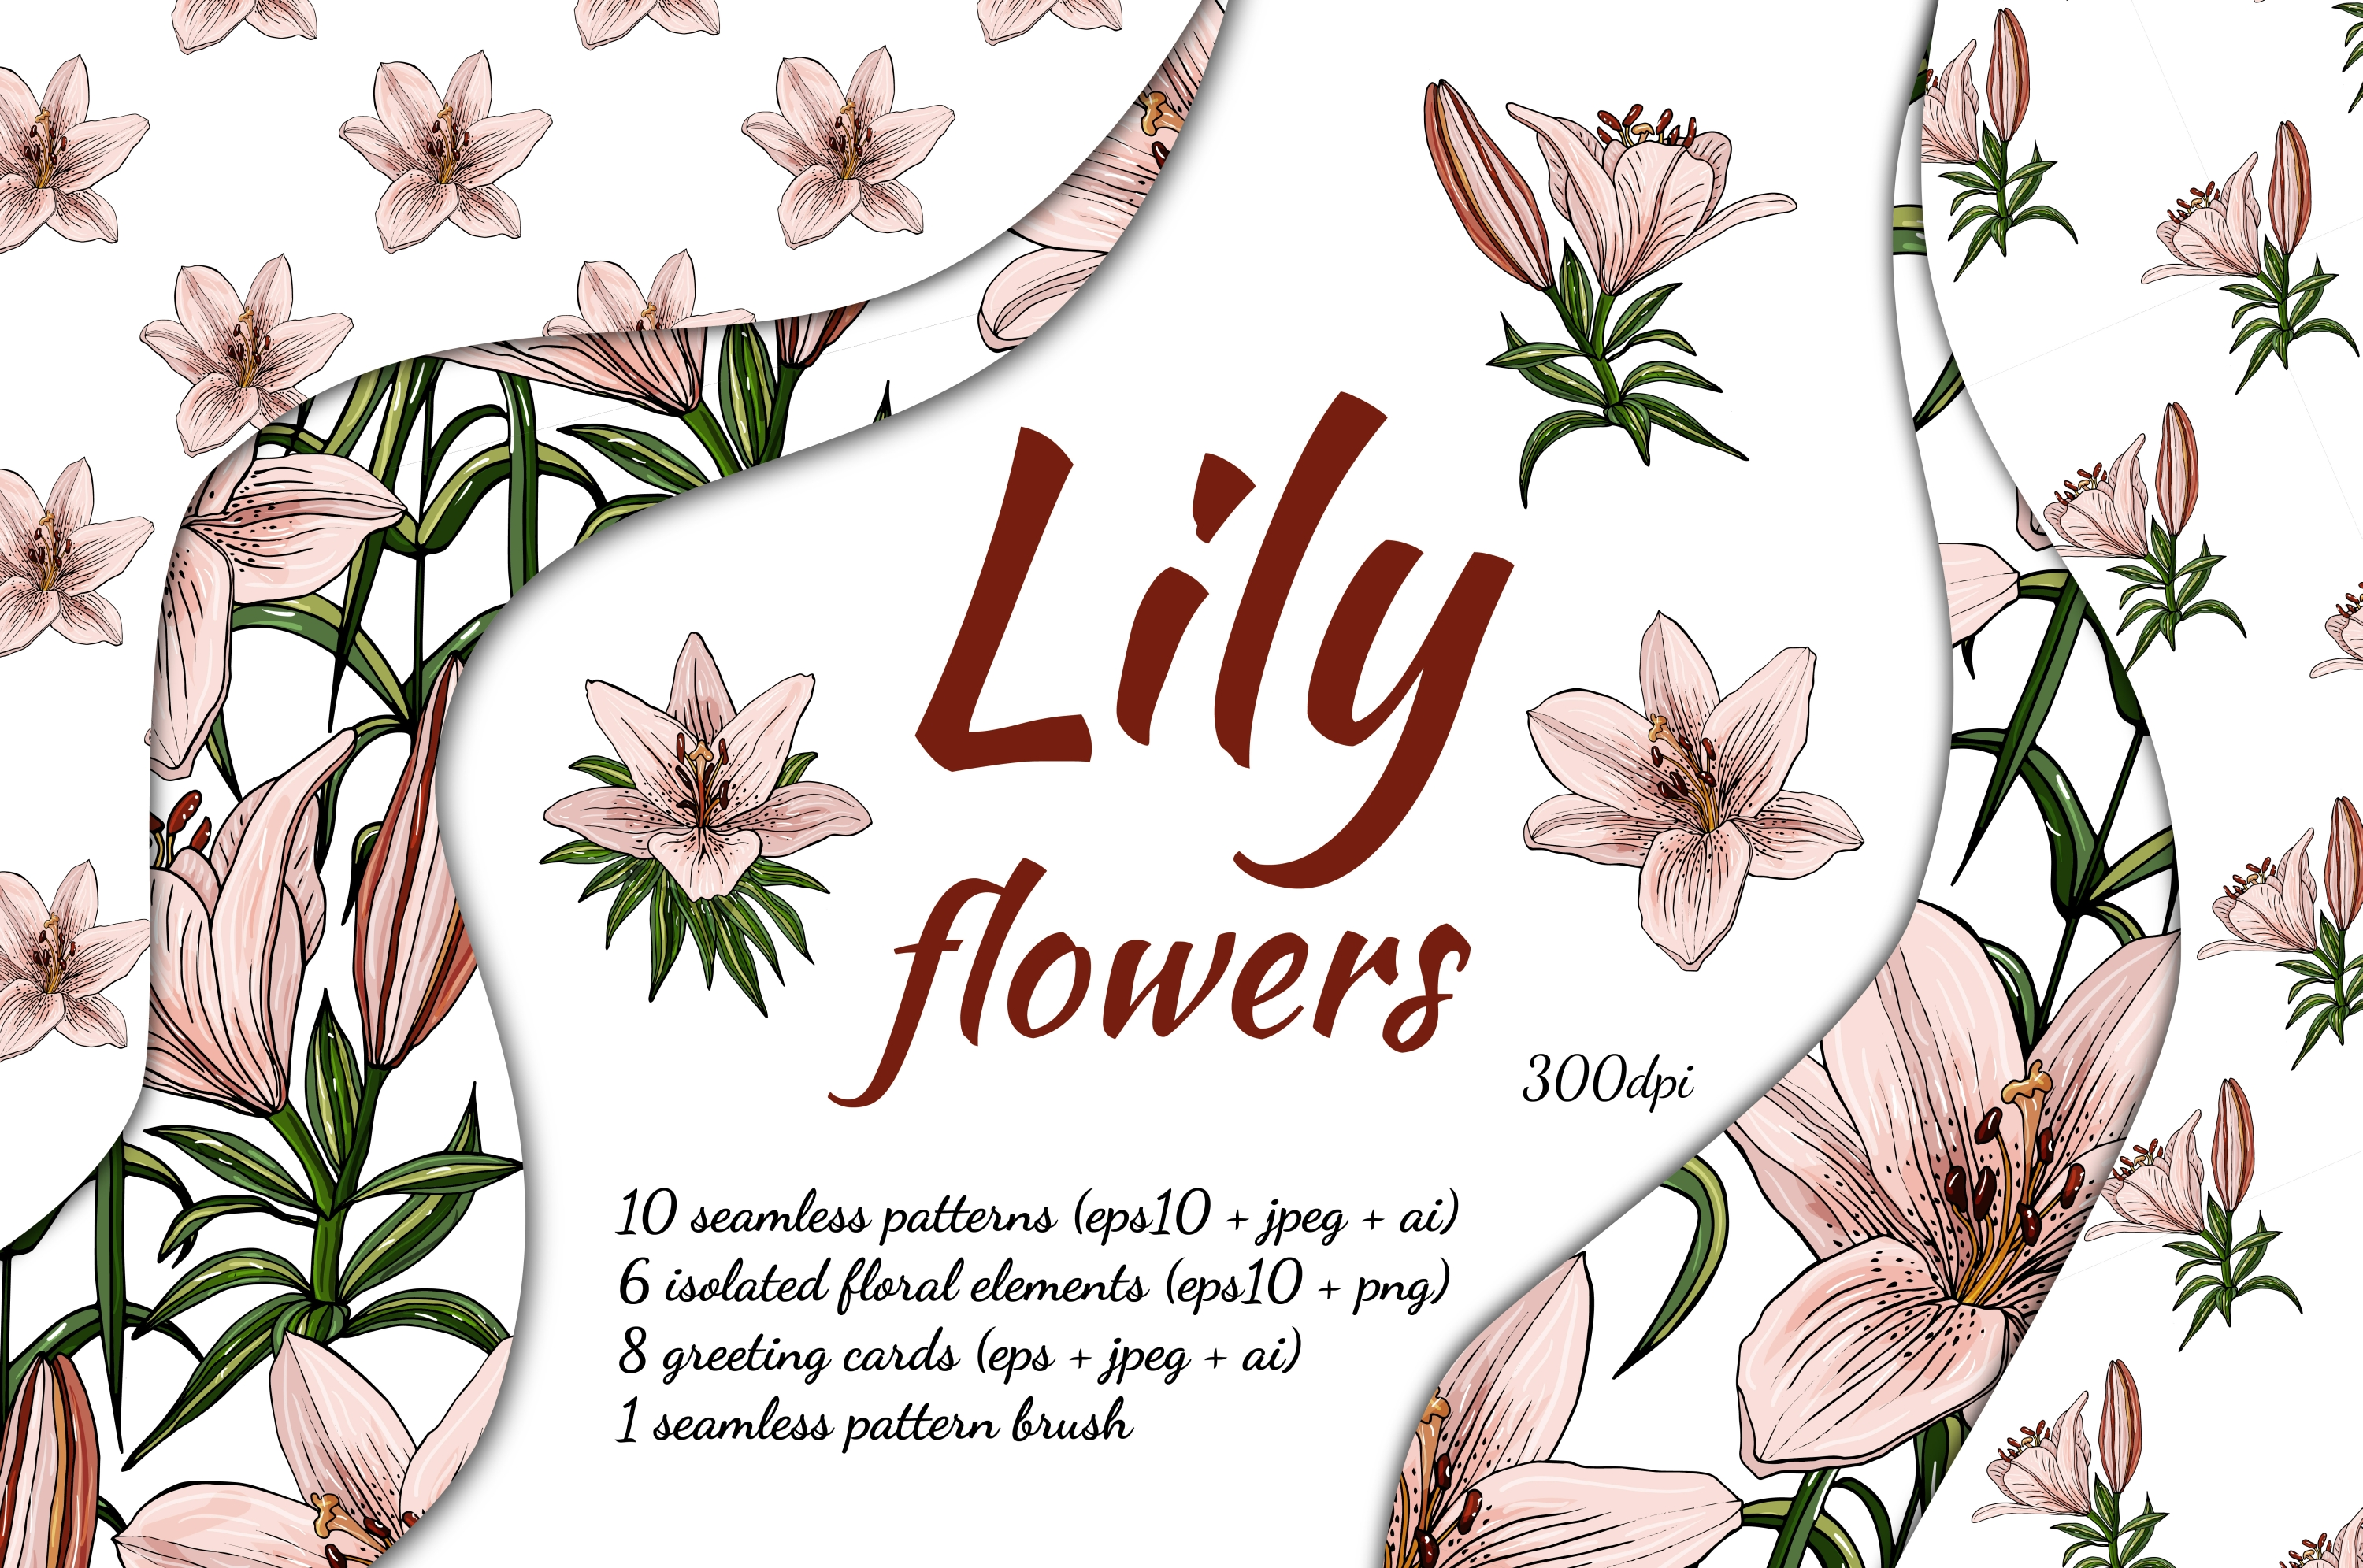 Design with lily flowers. Seamless patterns and postcards. example image 1